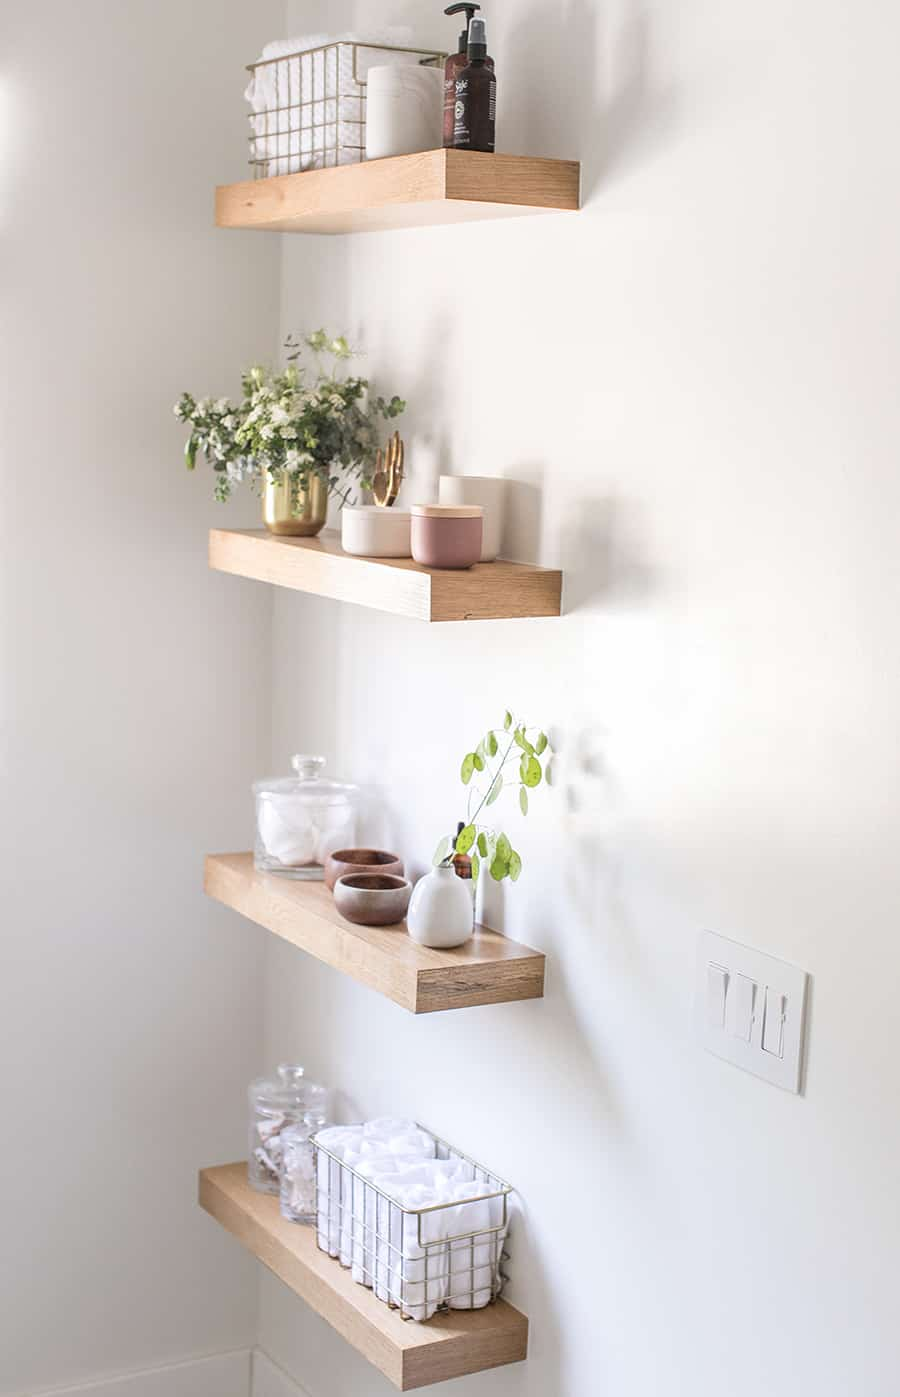 Built in shelving units with decorations and towel.